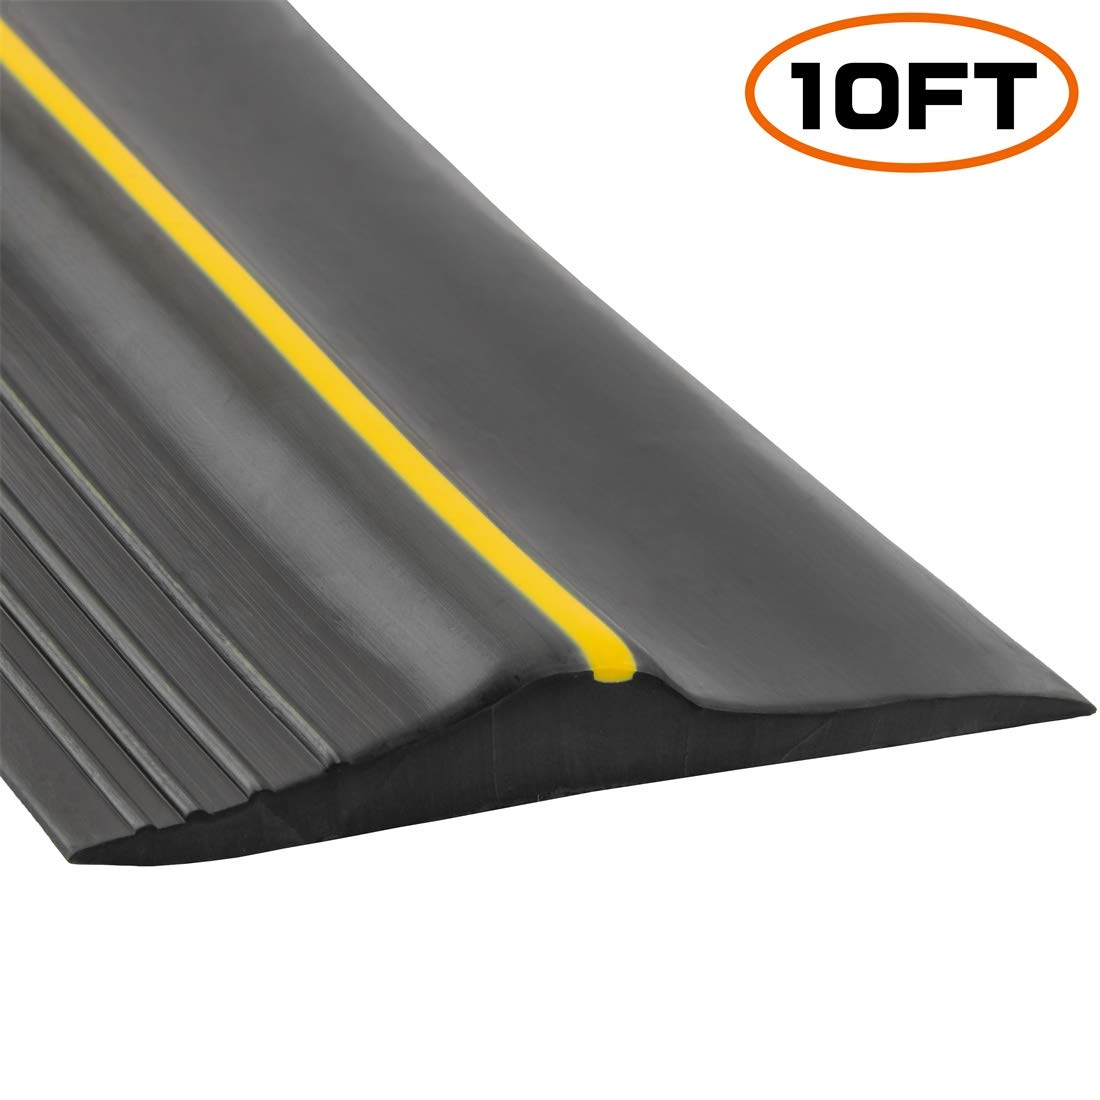 Universal Garage Door Bottom Threshold Seal Strip,Weatherproof Rubber DIY Weather Stripping Replacement, Not Include Sealant/Adhesive (10Ft, Black) by PAPILLON